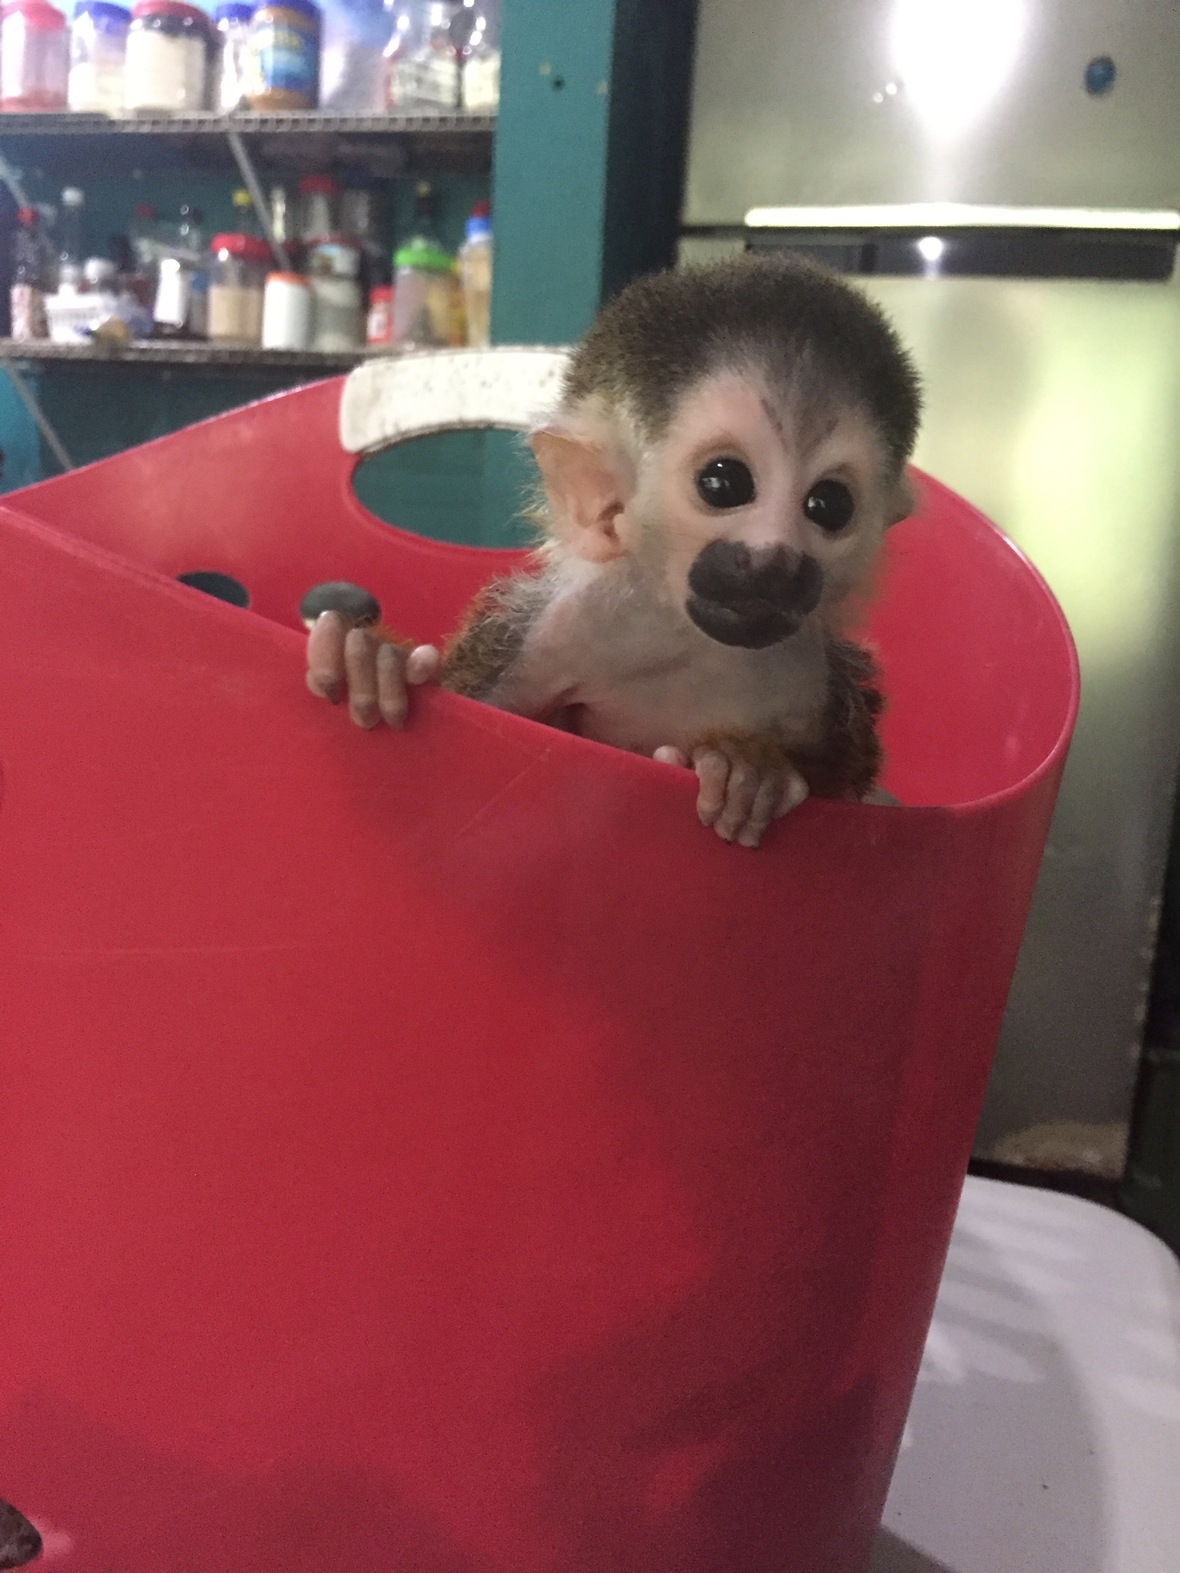 Baby squirrel monkey sticking head out of laundry basket